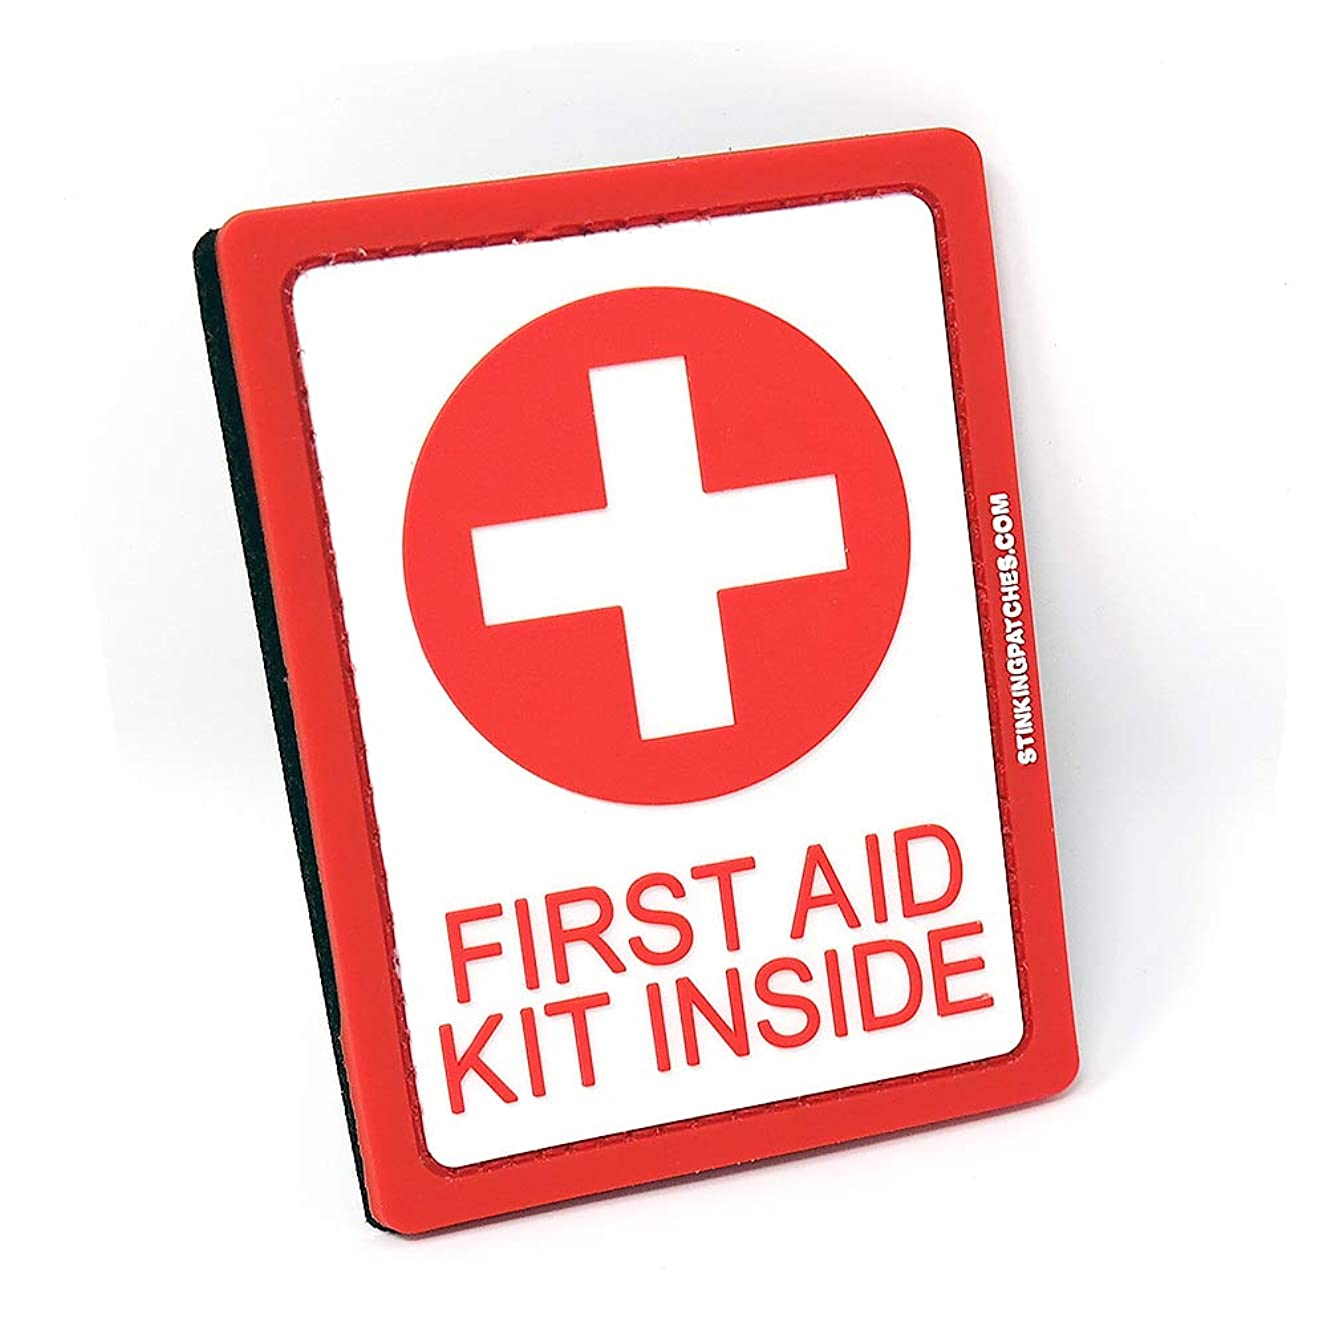 First Aid Kit Inside PVC Tactical Patch | Red and White